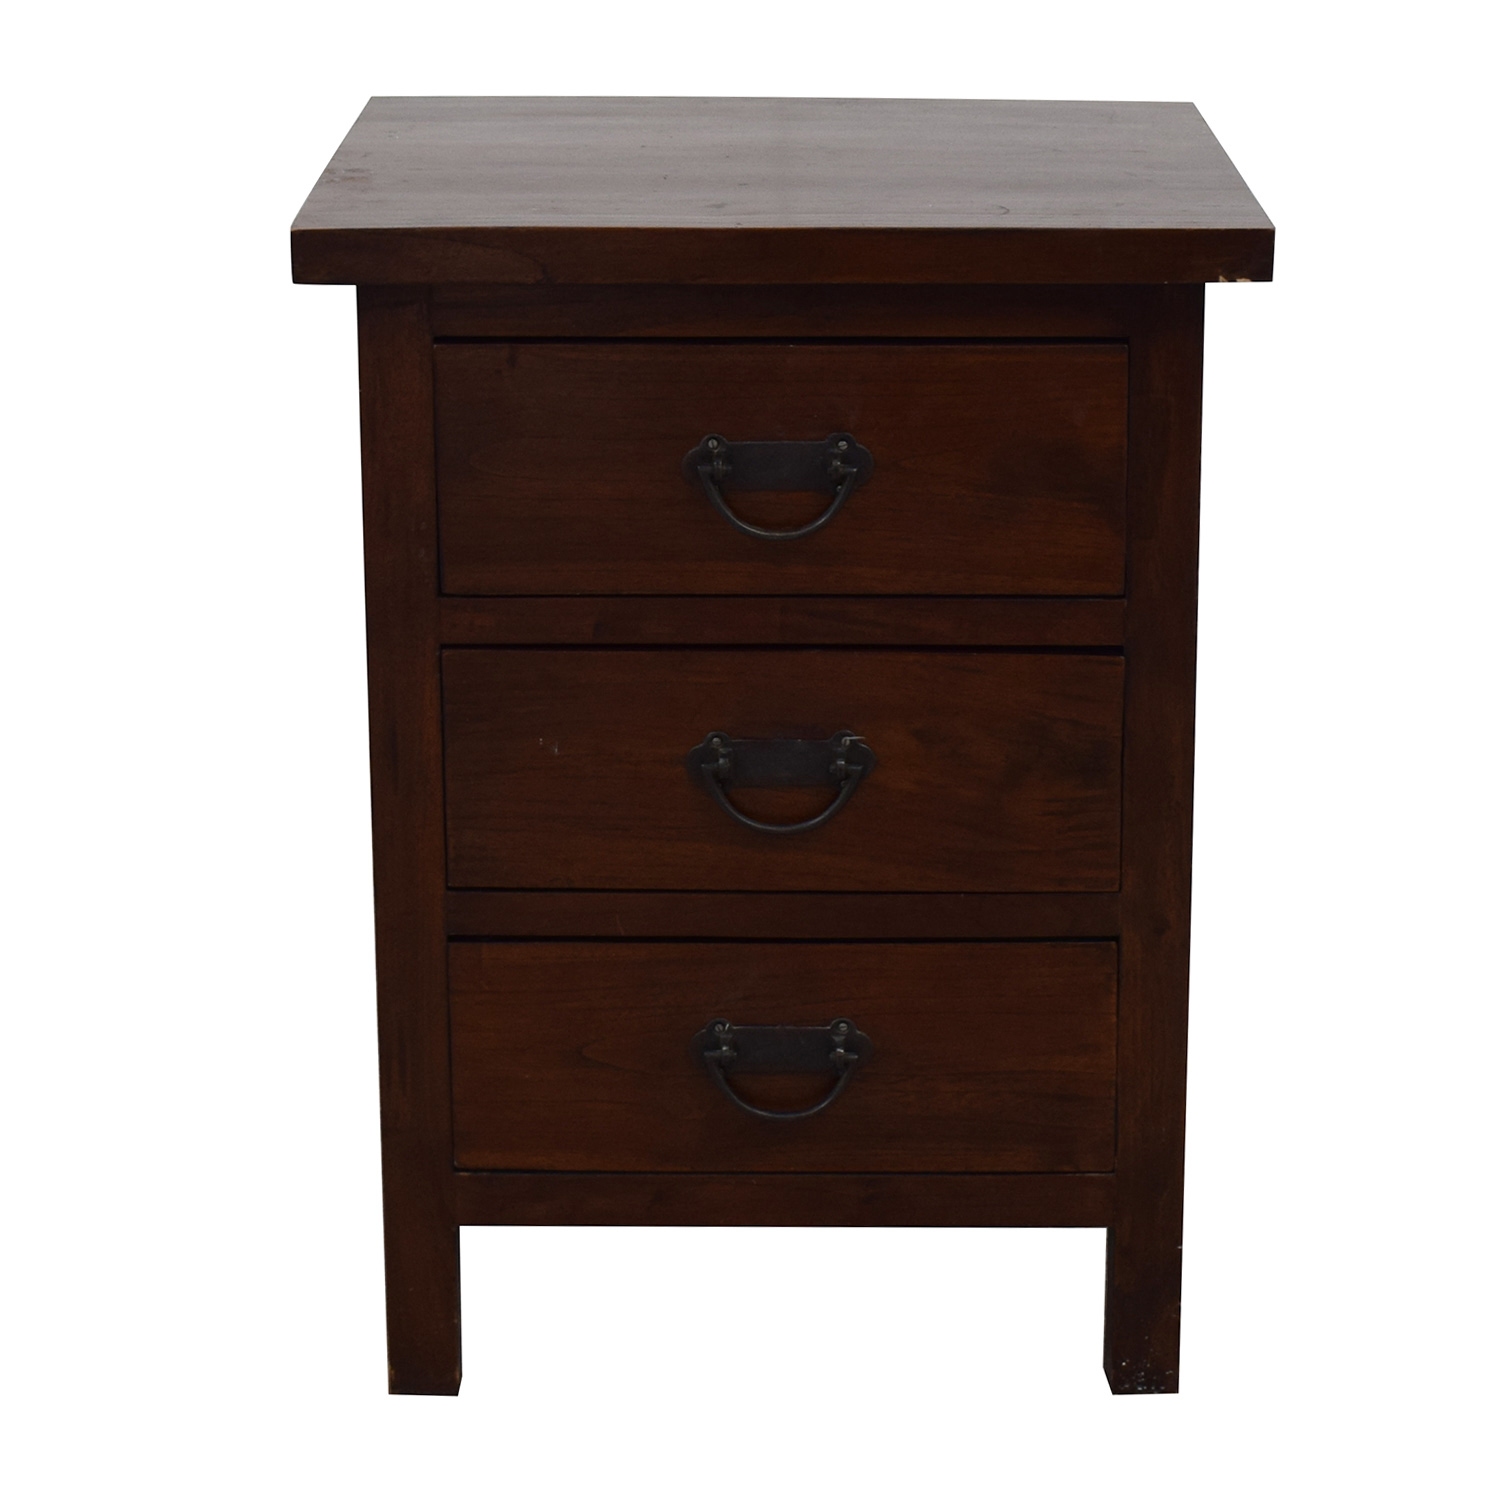 buy Crate & Barrel Nightstand with Drawers Crate & Barrel End Tables